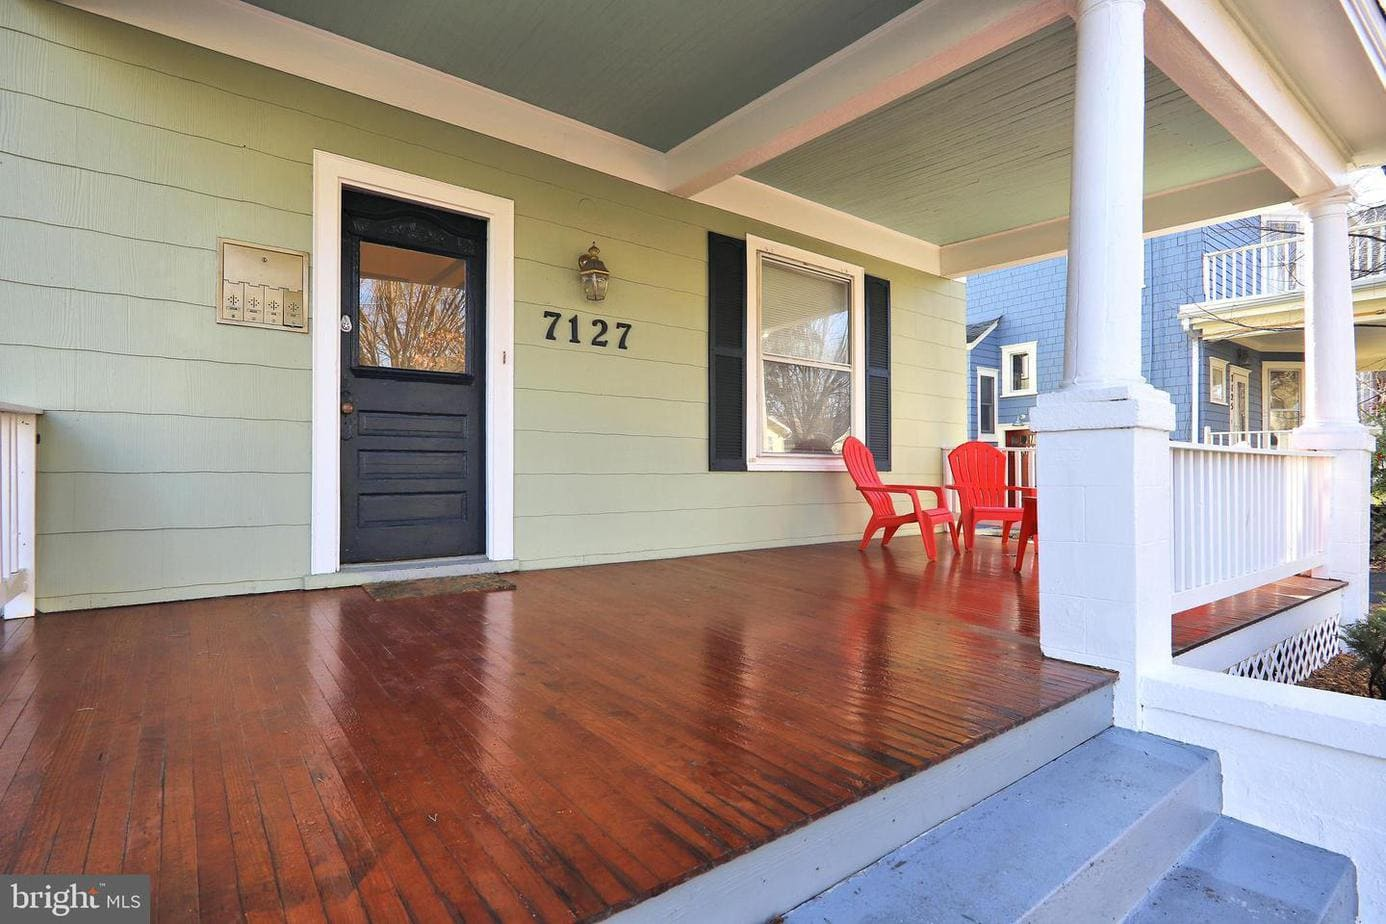 Don't Miss an All 4-Unit Open House in Heart of Historic Takoma Park on Sunday